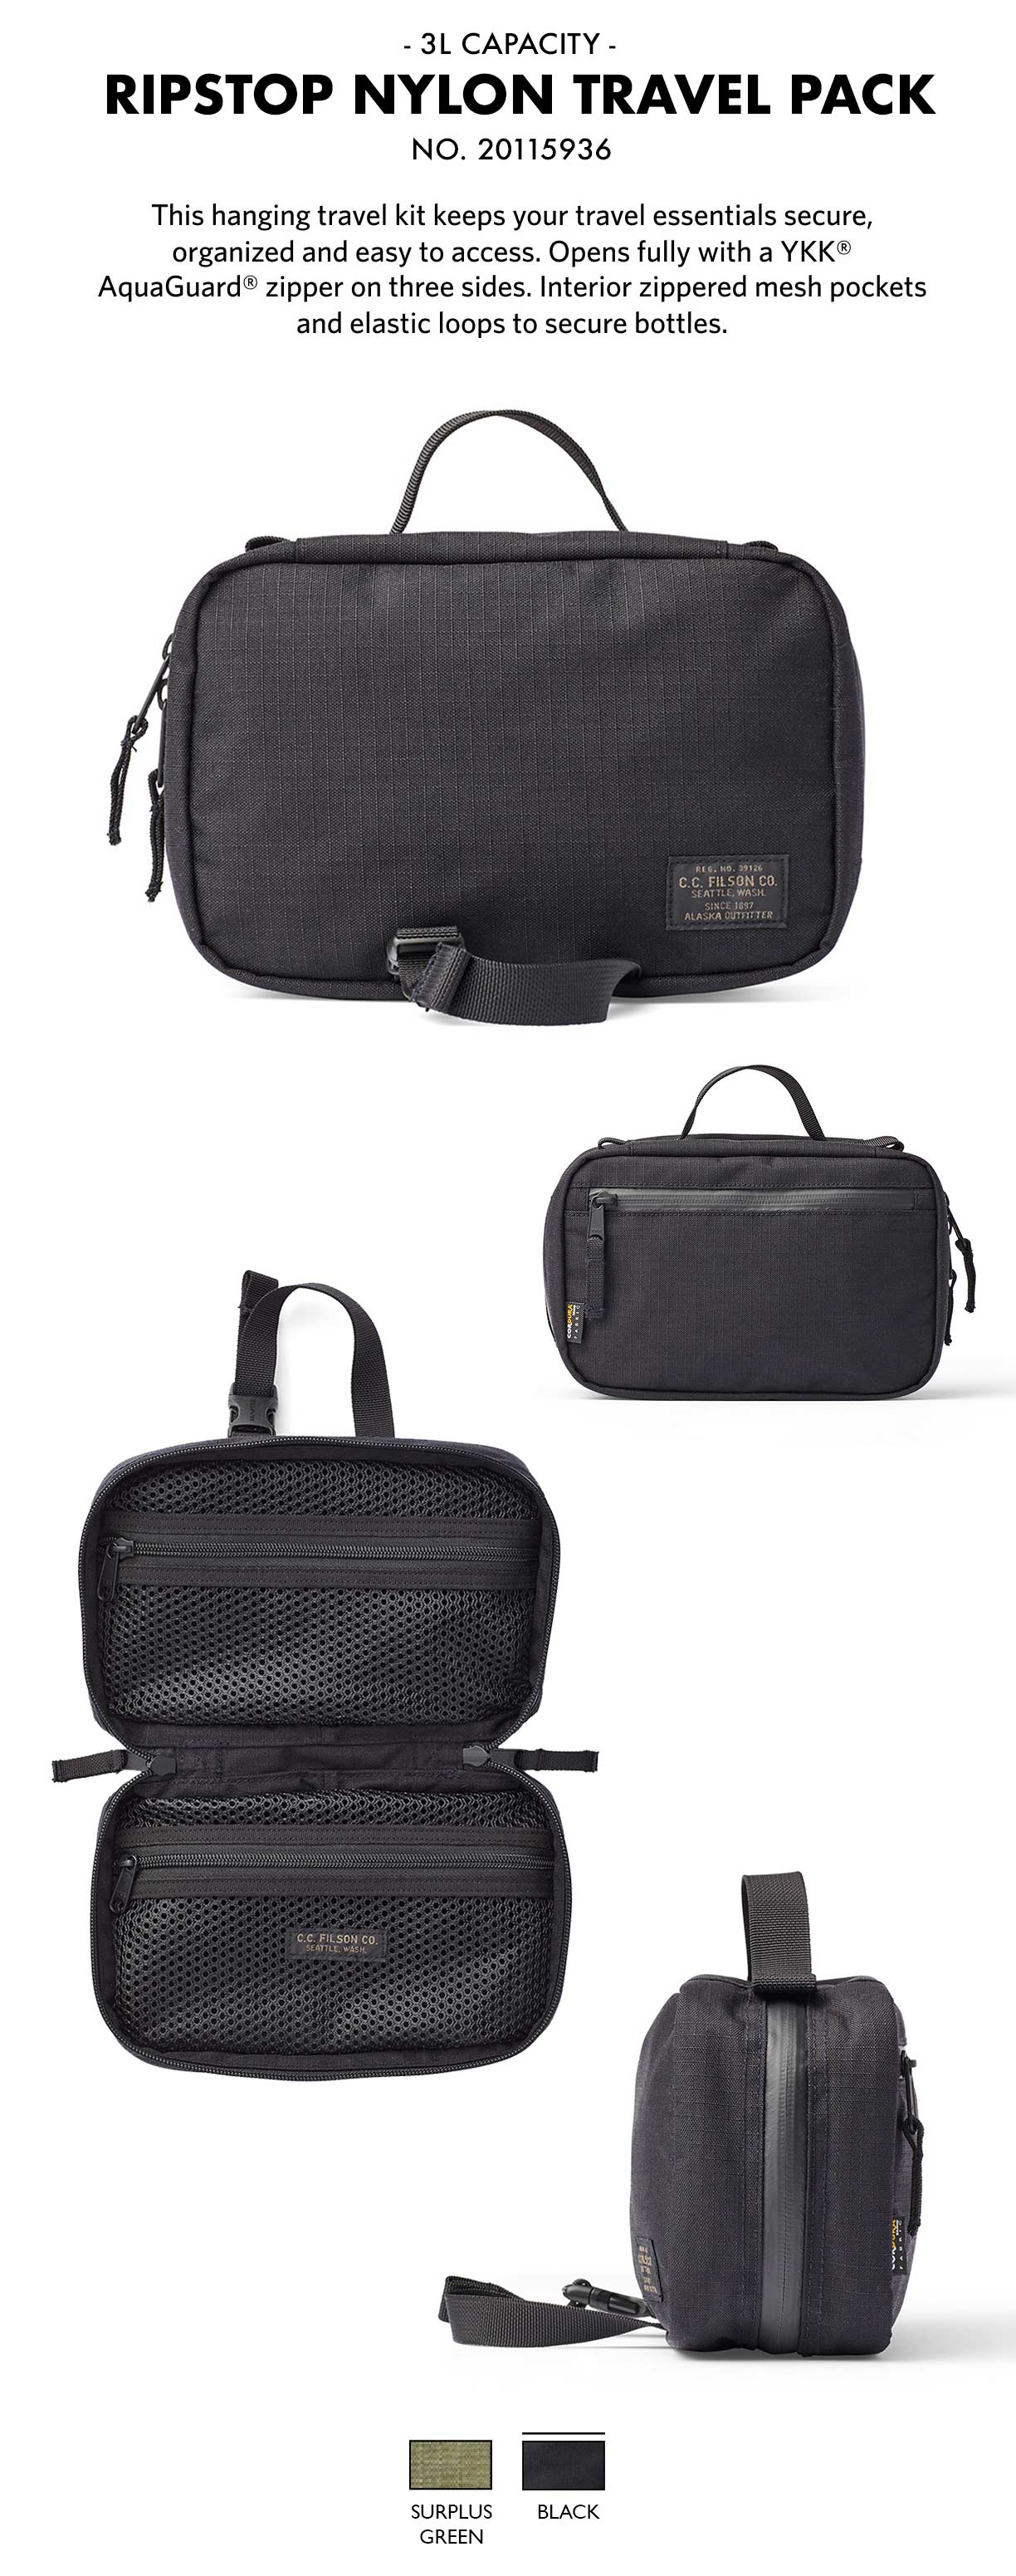 Filson Ripstop Nylon Travel Pack Black Product-information